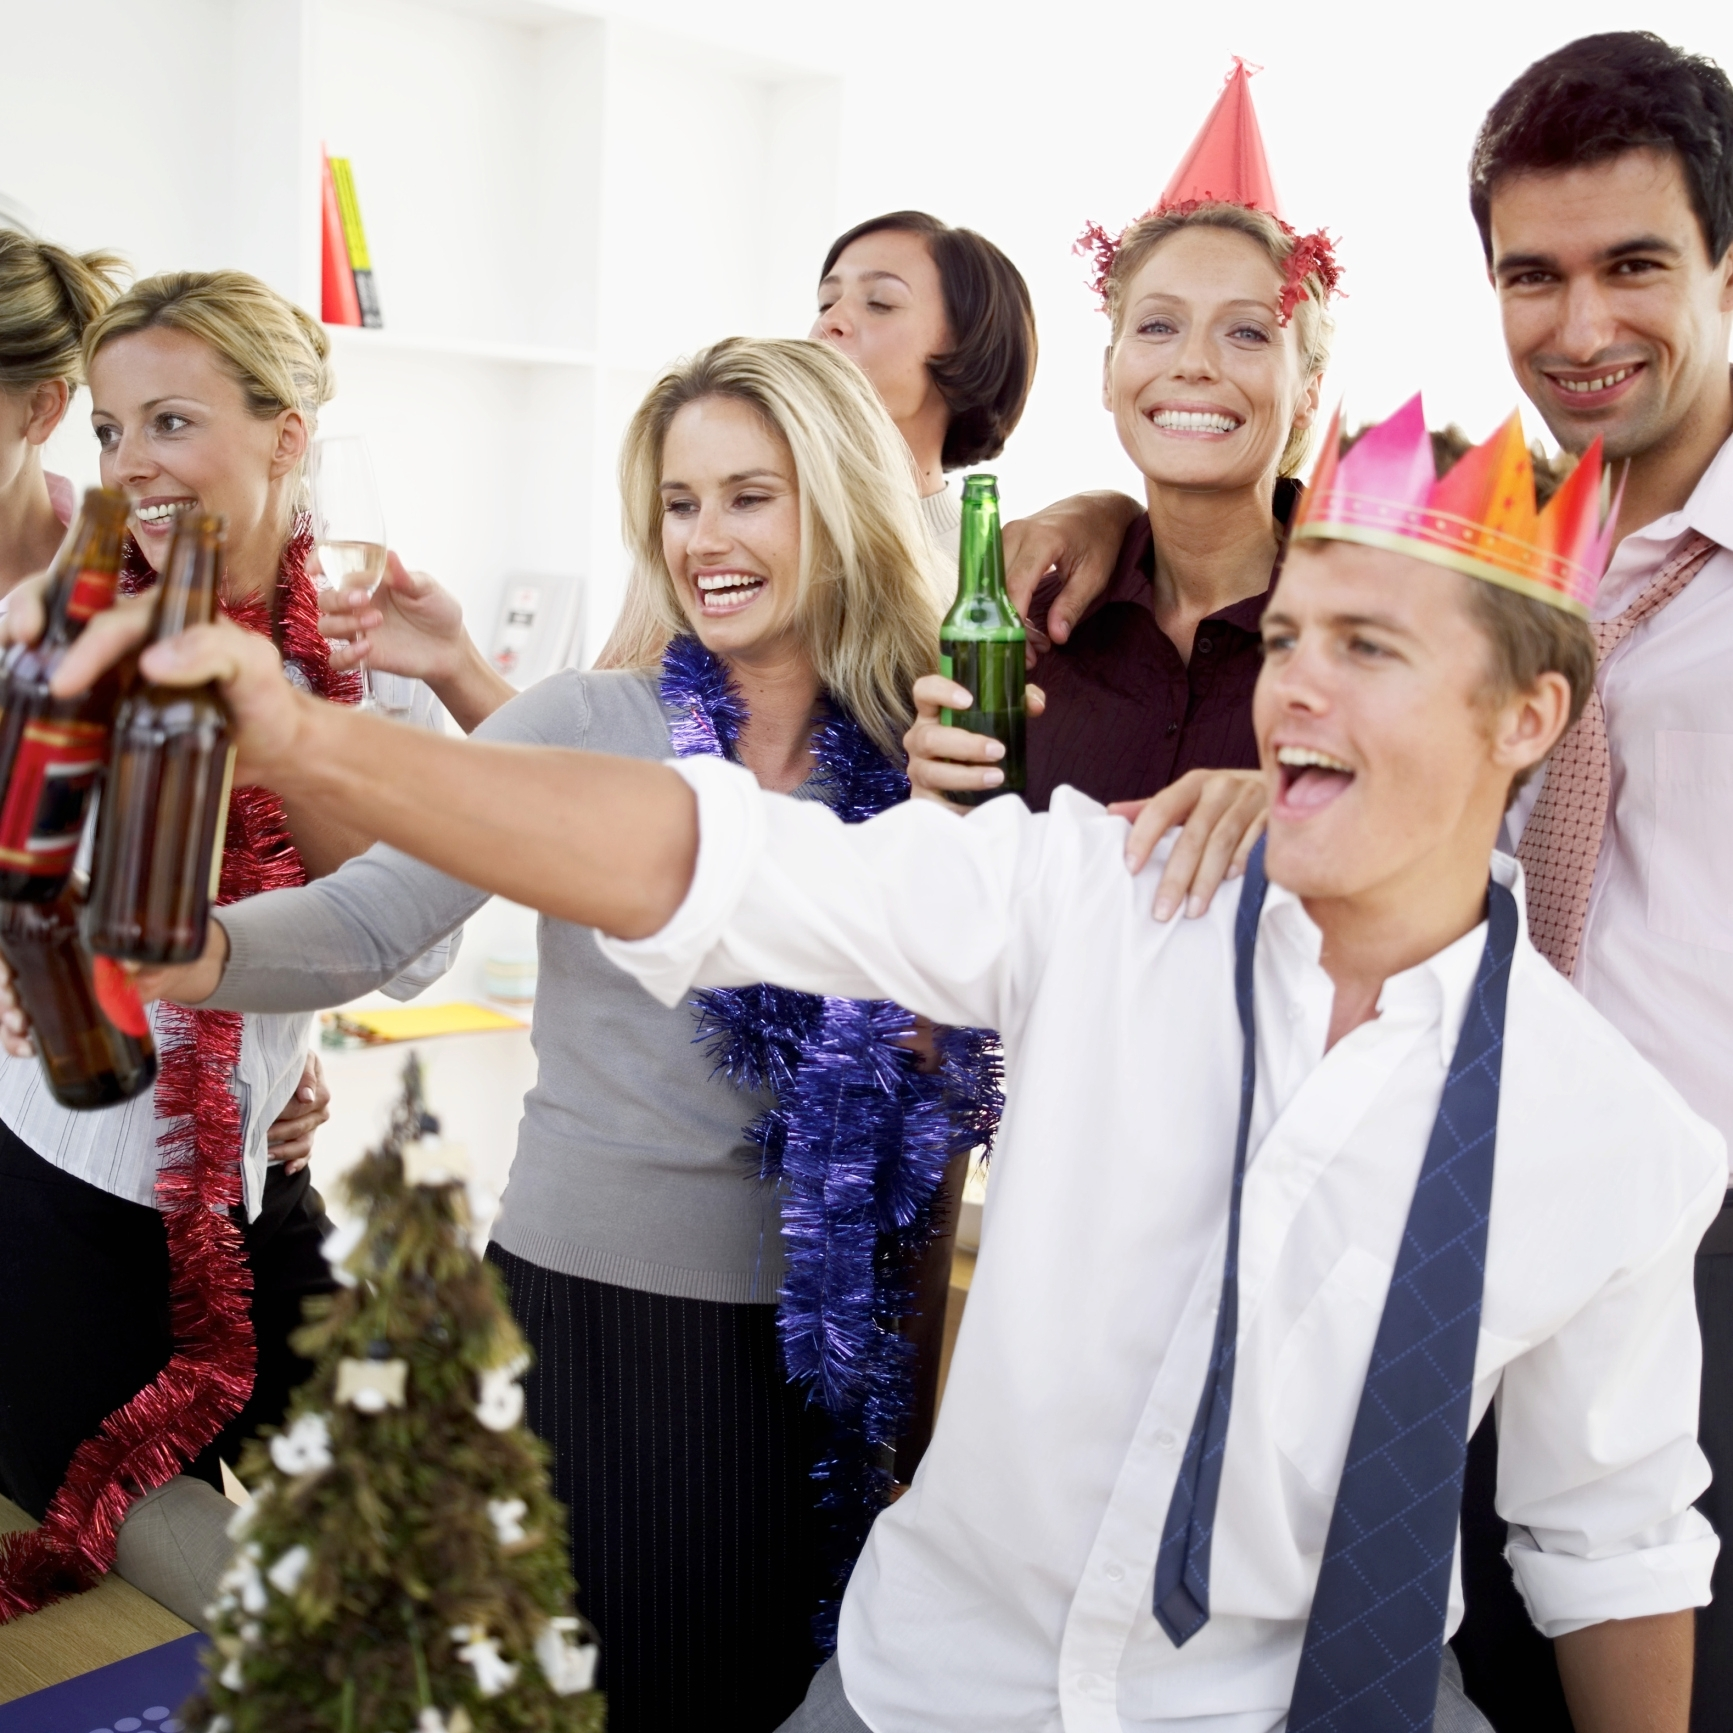 close-up of co-workers celebrating with beers at a office party.